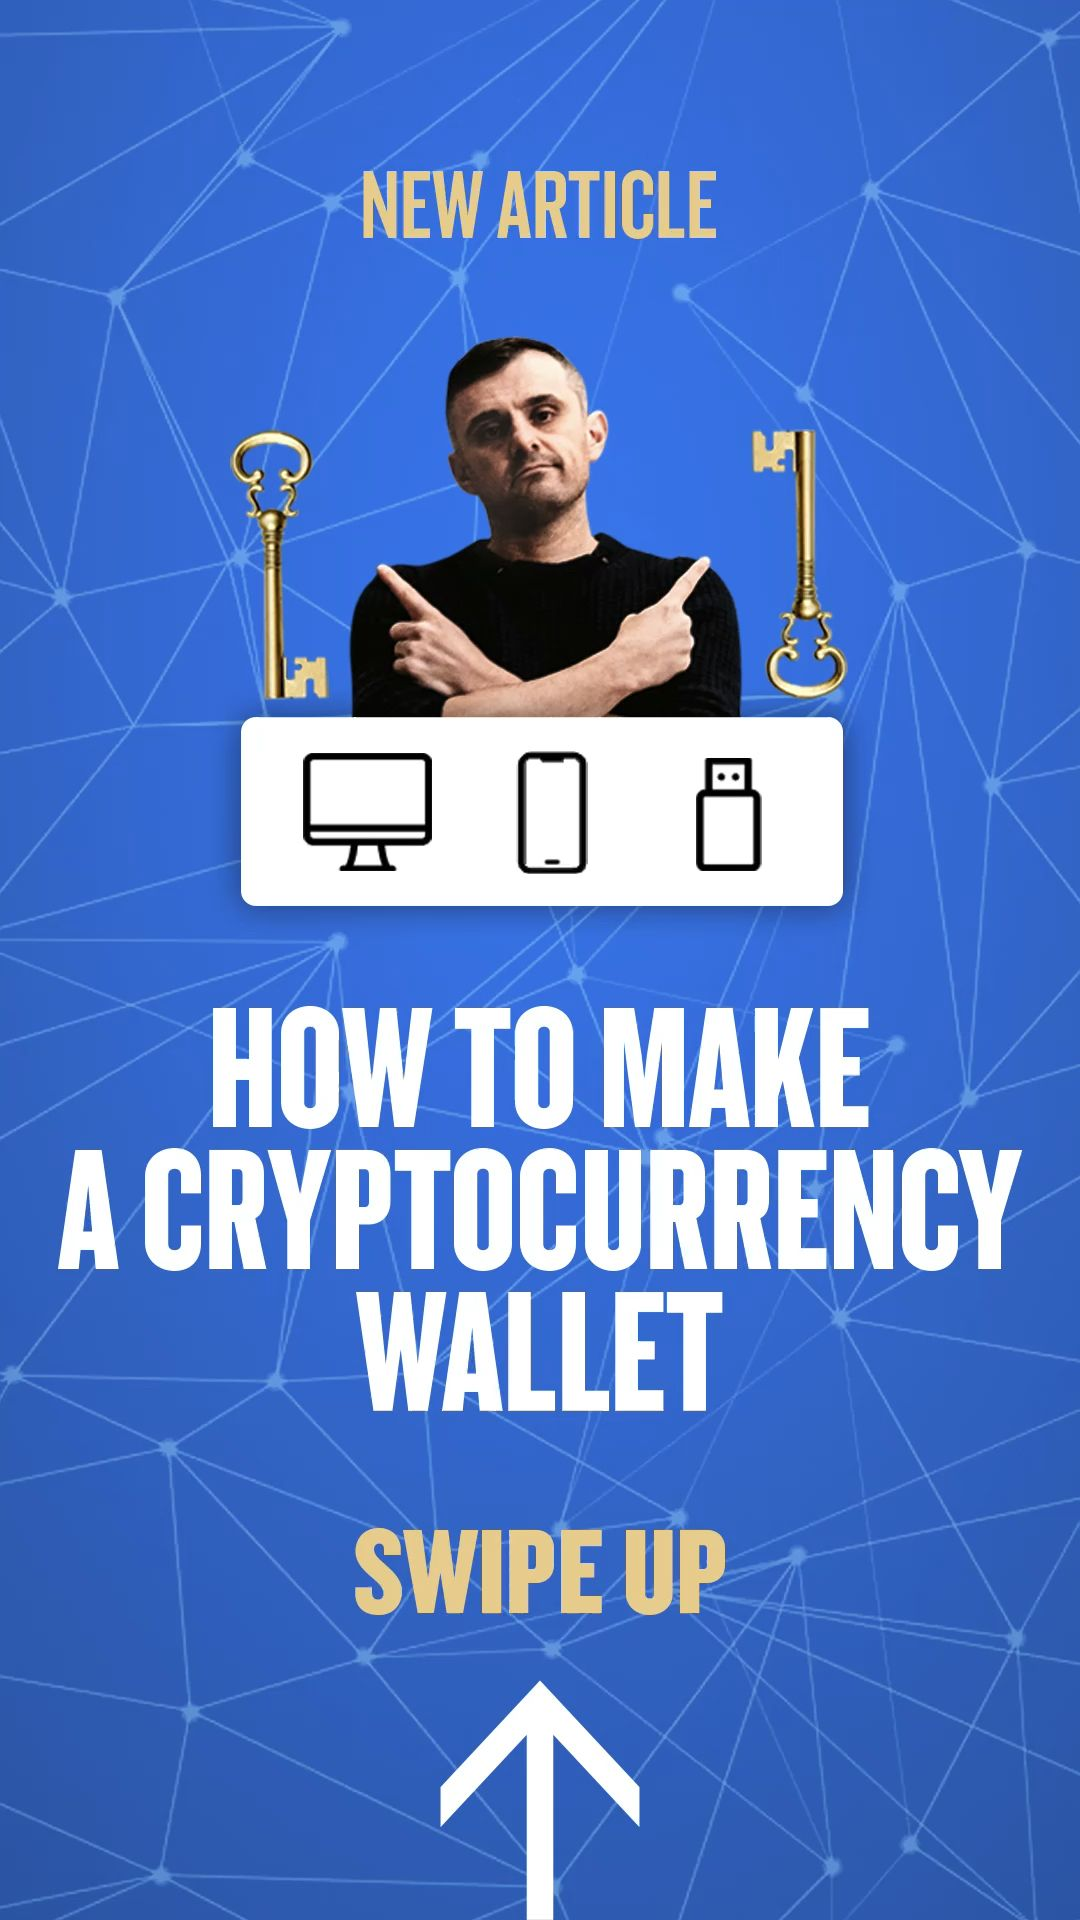 How to Make a Cryptocurrency Wallet